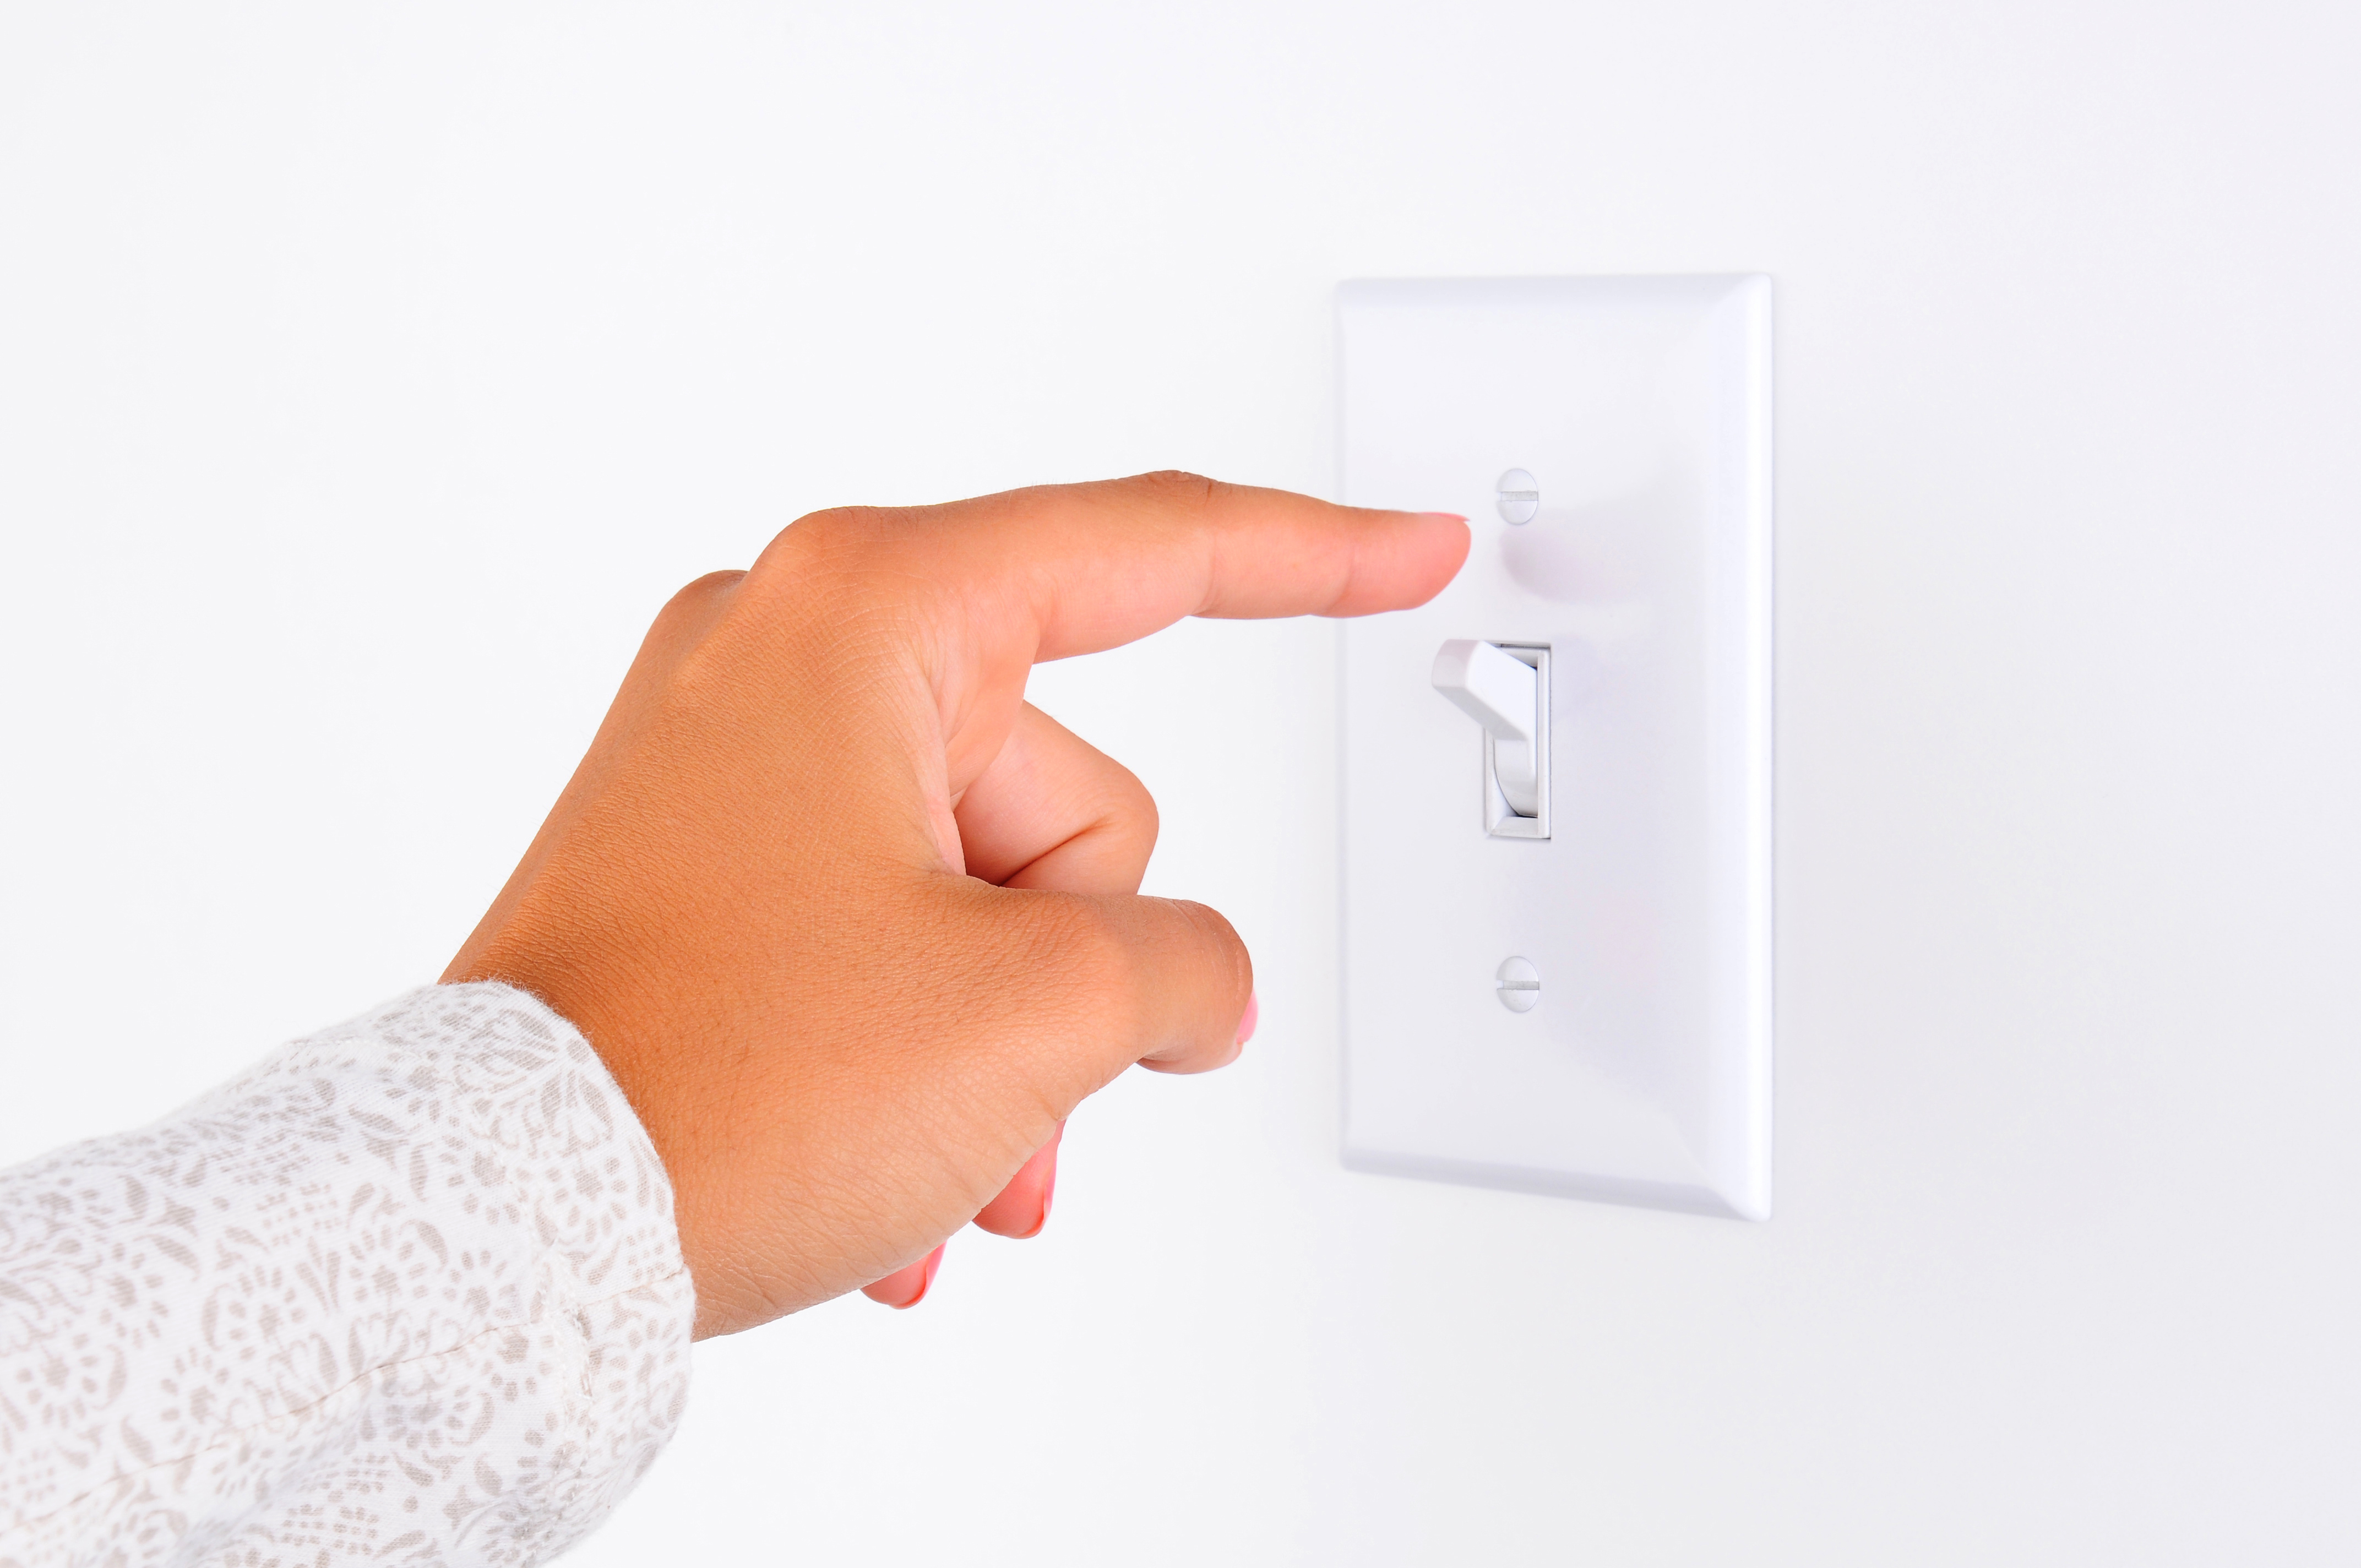 If you have a light switch in your home but have no idea what it controls, you're not alone.